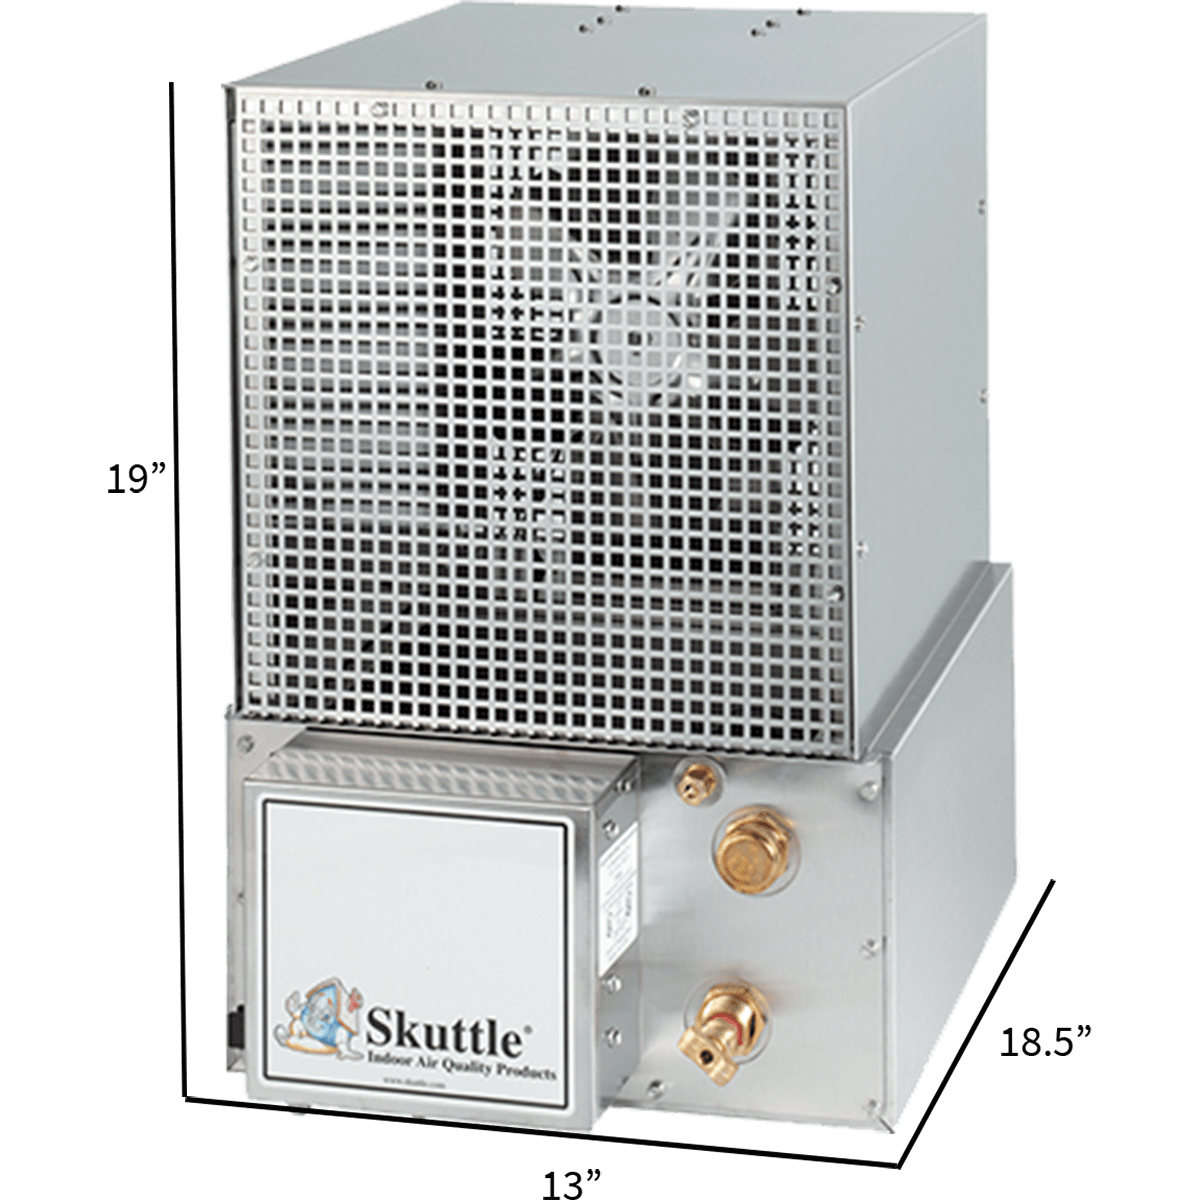 Skuttle Model 60-BC1 Stainless Steam Humidifier | Sylvane